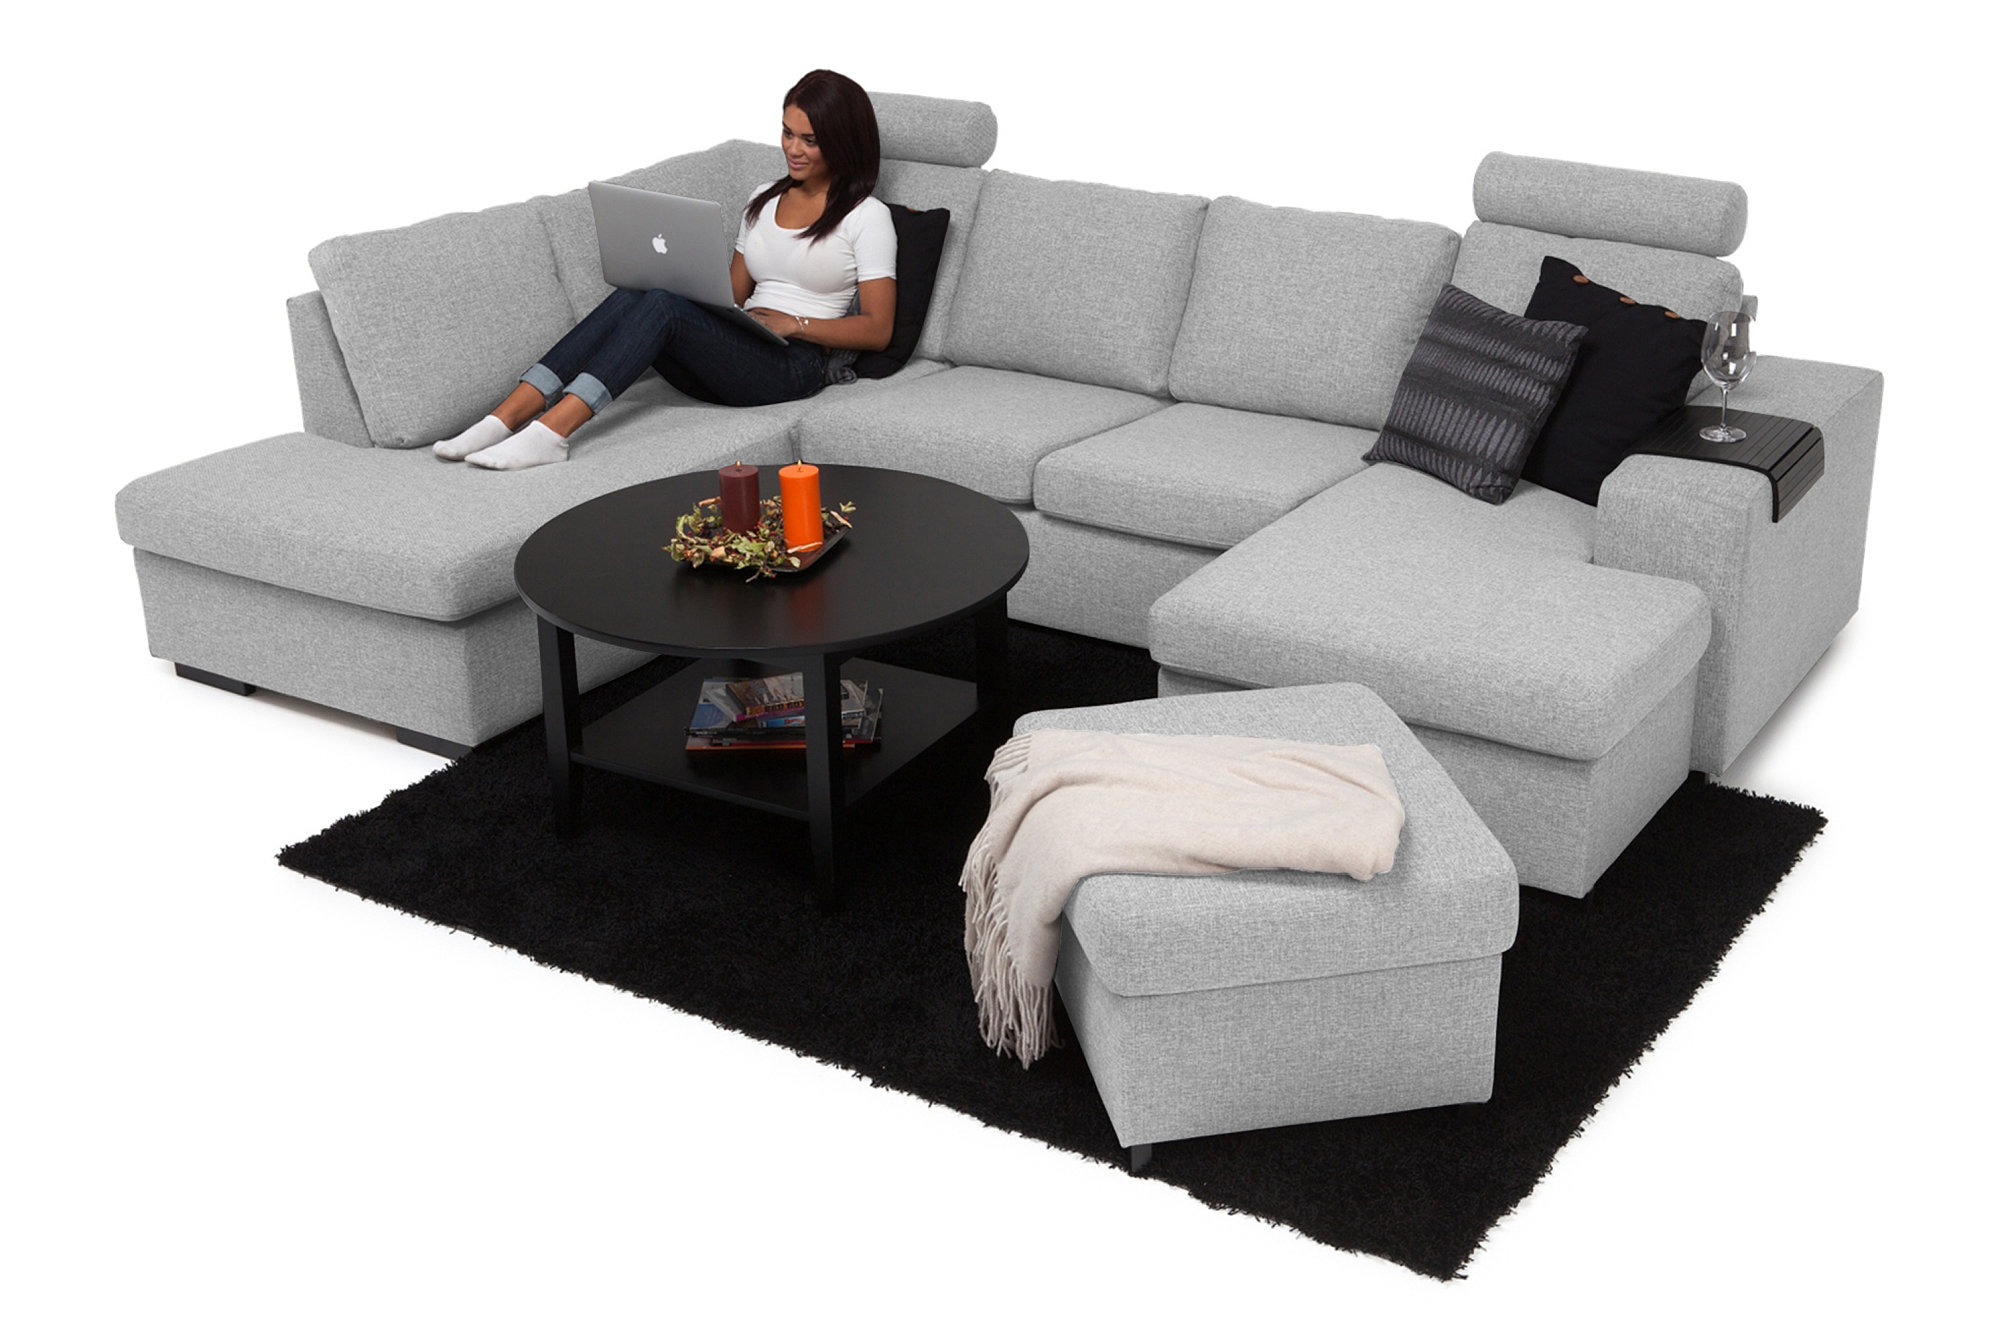 U Couch Best U Shaped Couch Reviews 2018: Bring Family And Friends ...